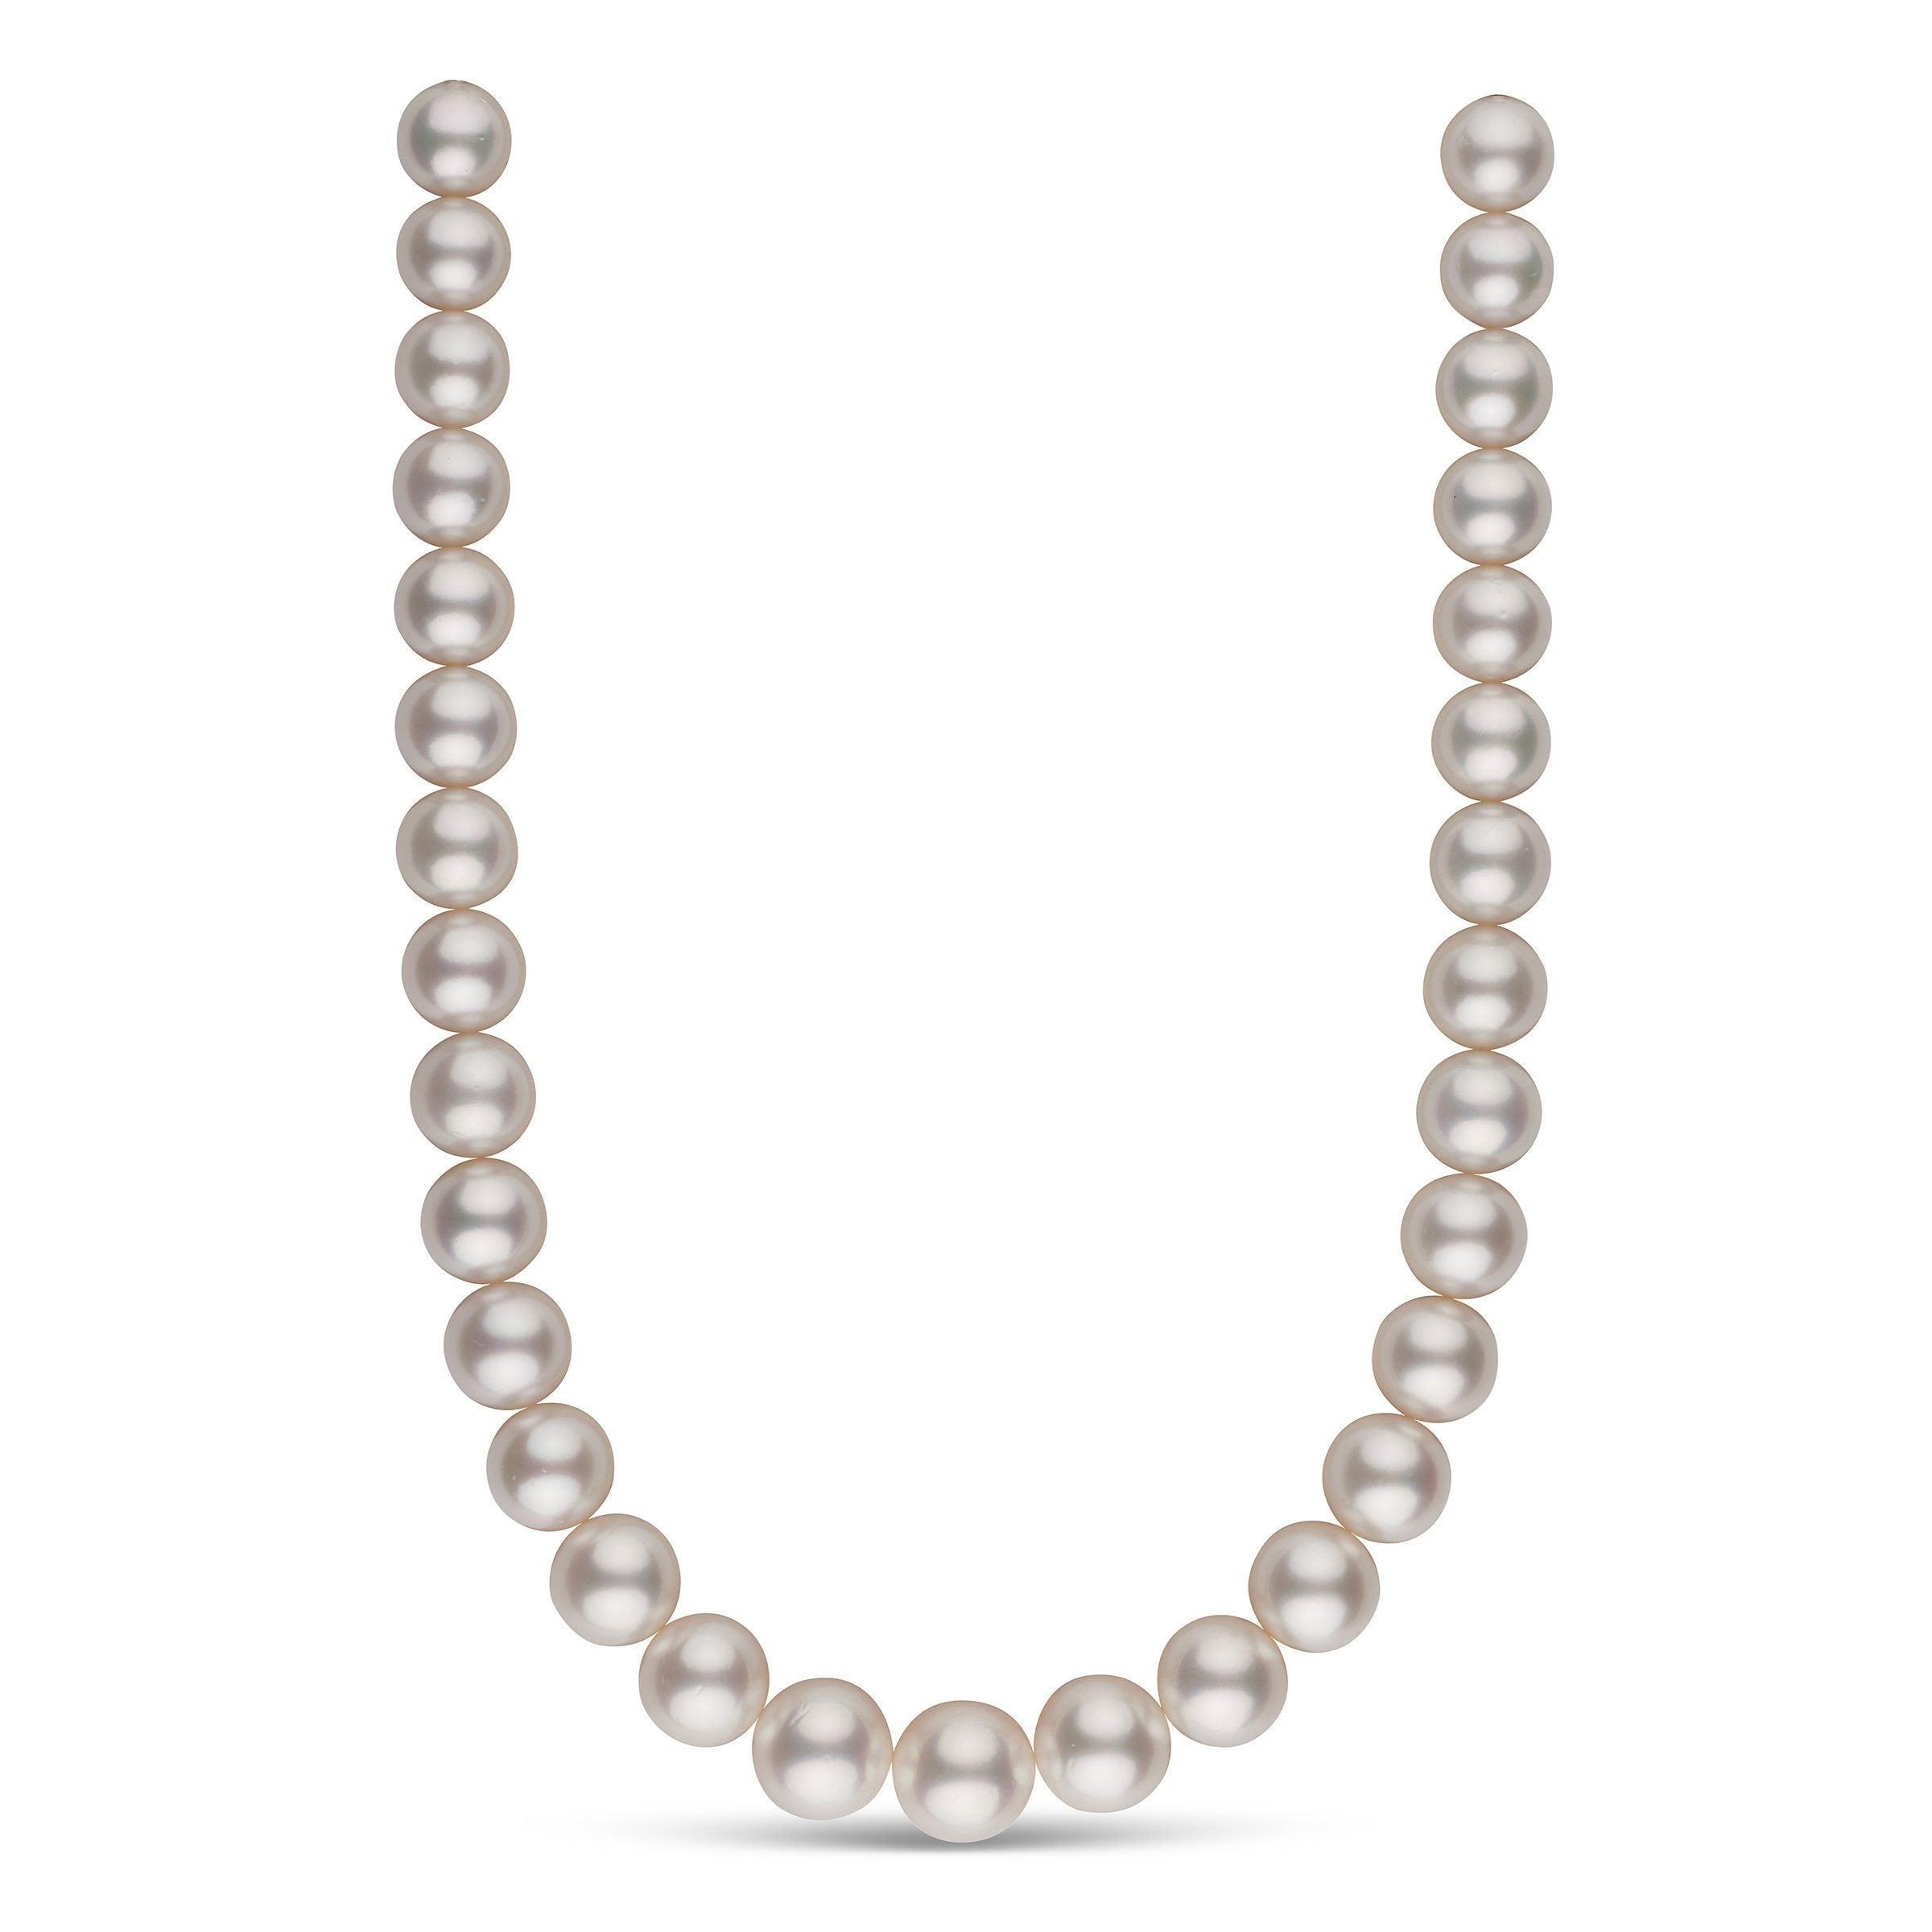 The Ensemble White South Sea Pearl Necklace